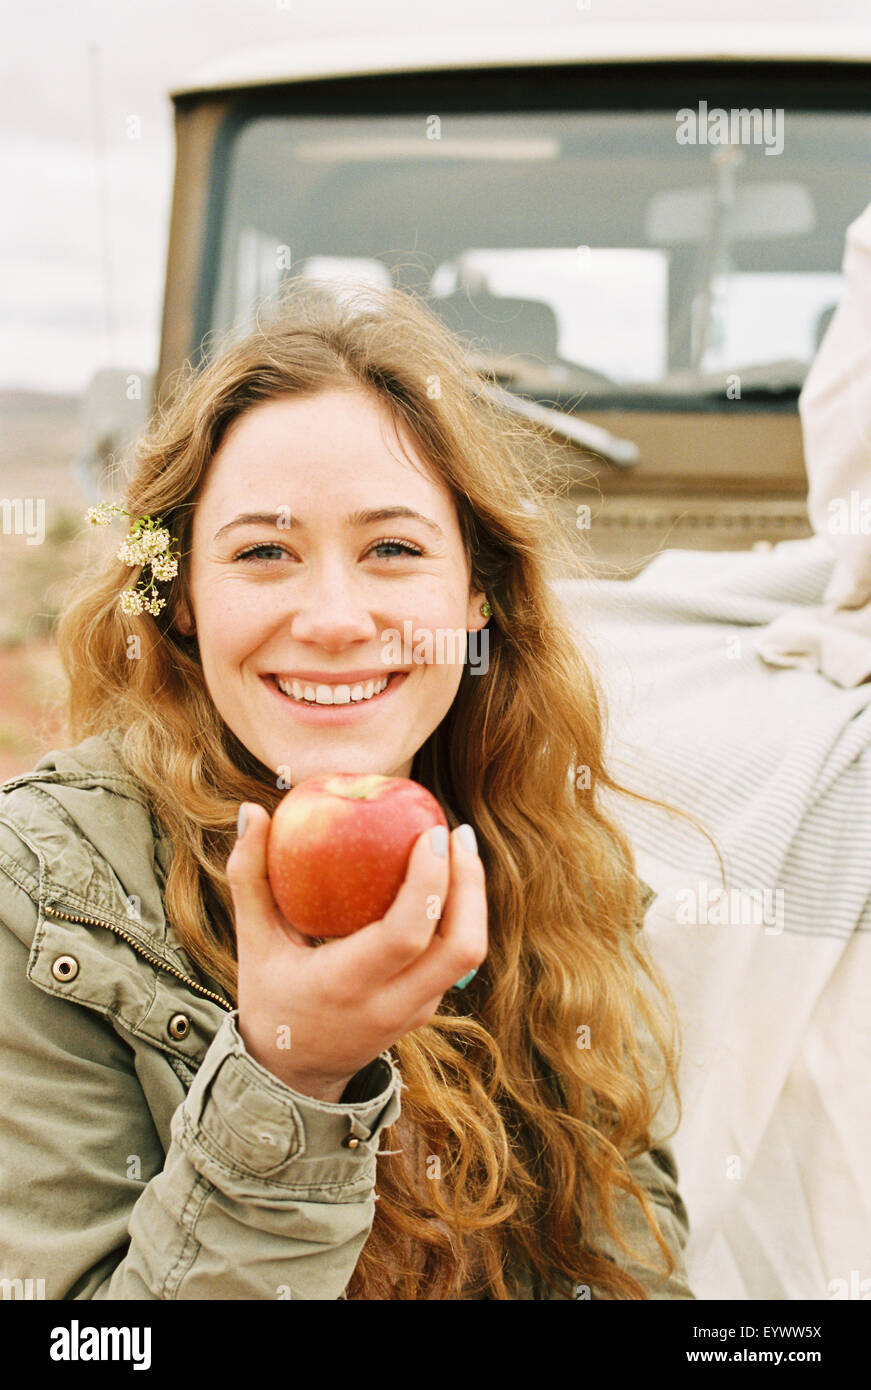 A young woman holding out a red skinned apple. - Stock Image